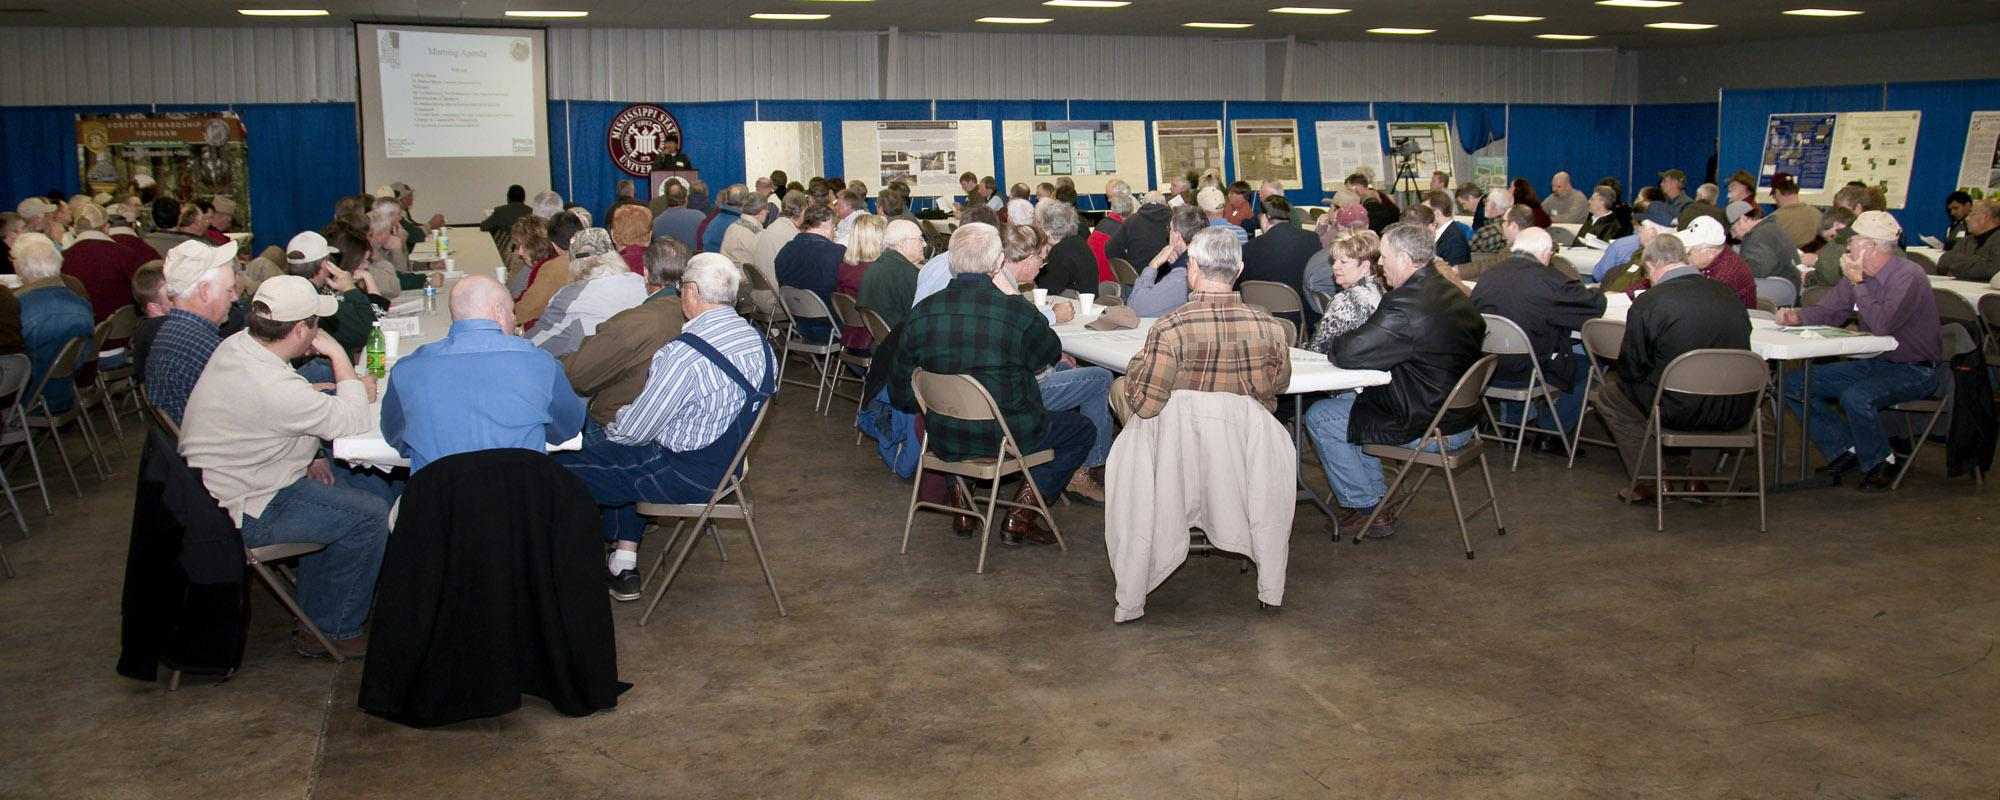 This year's attendance at the North Mississippi Producer Advisory Council was the largest in recent history, with more than 300 attendees. (Photo by Scott Corey)